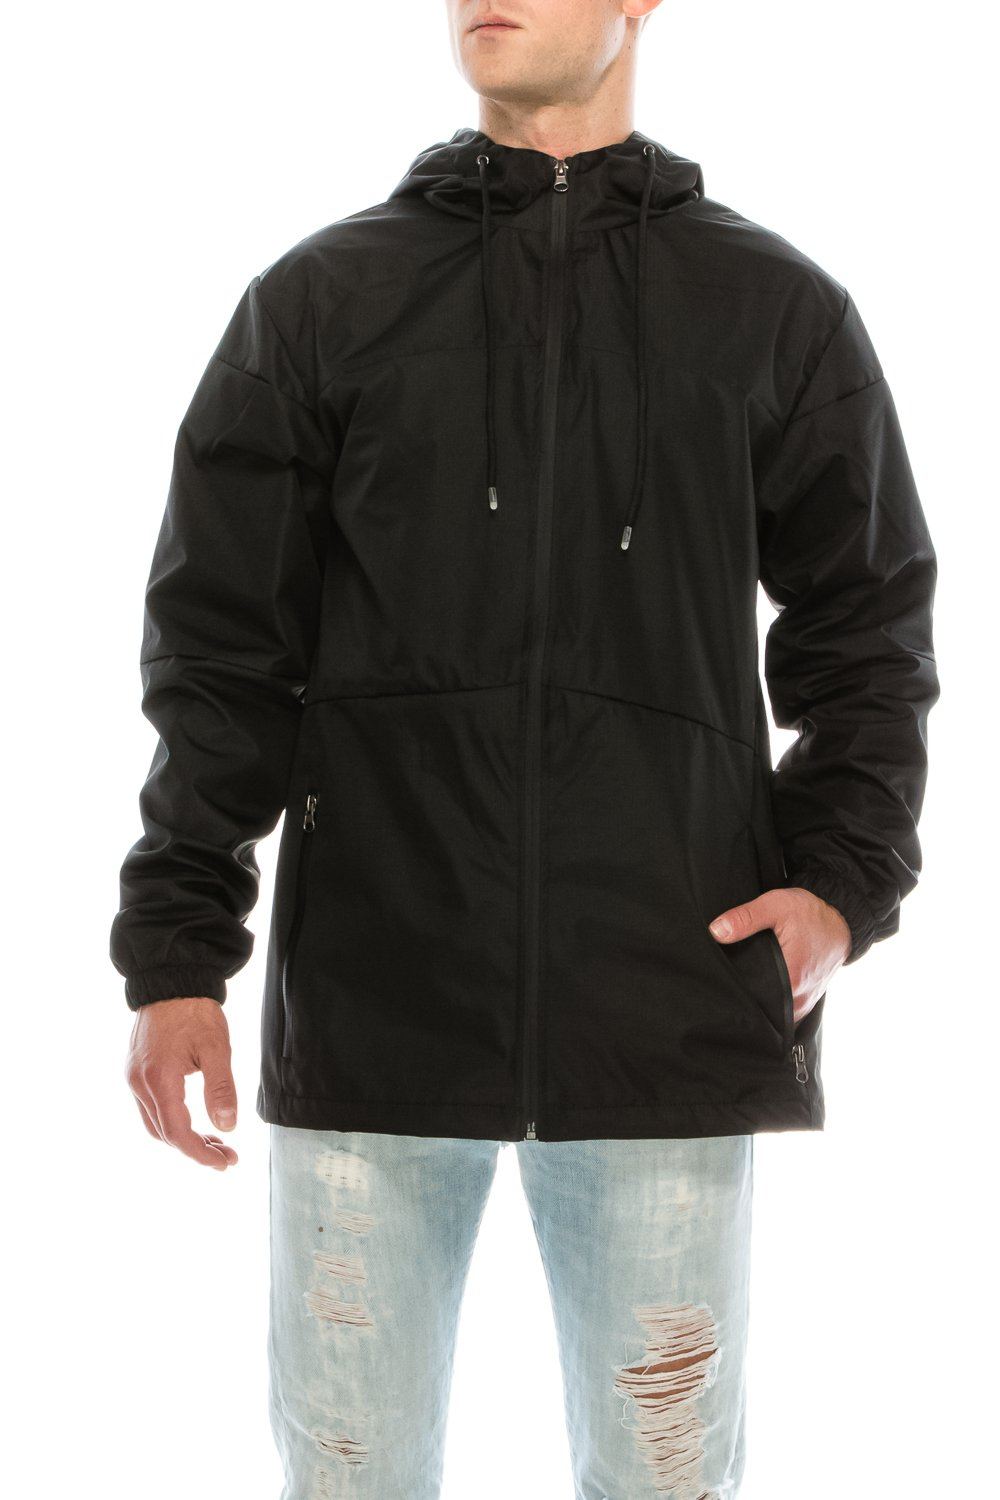 KlothesKnit Men's Light Waterproof Hooded Zip up Jacket with Pockets Large Black